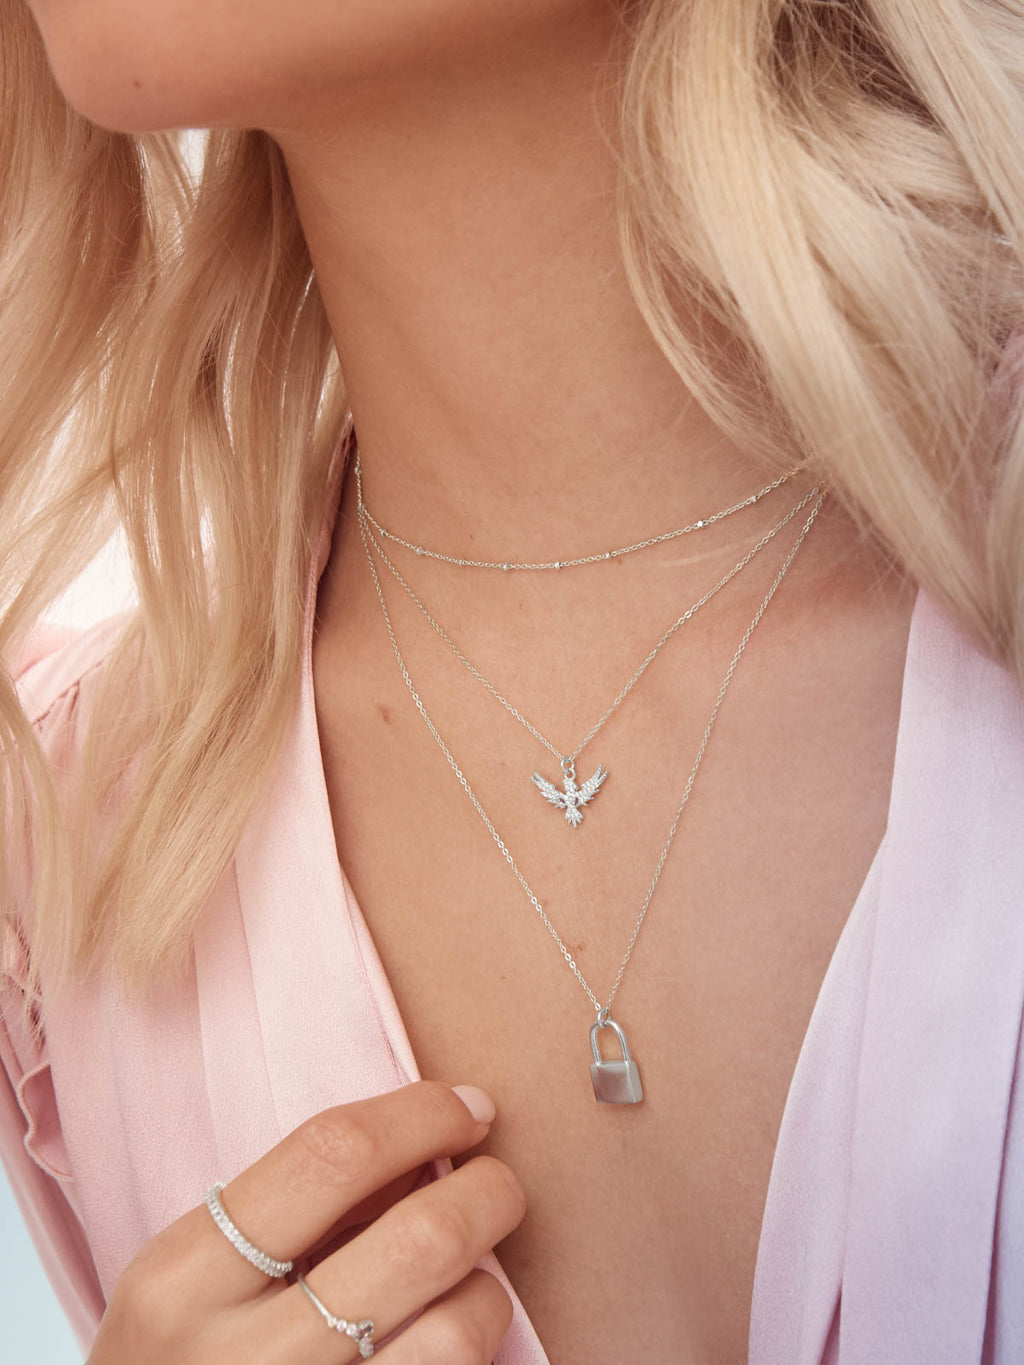 Bird Charm Silver Necklace by The Faint Hearted Jewelry